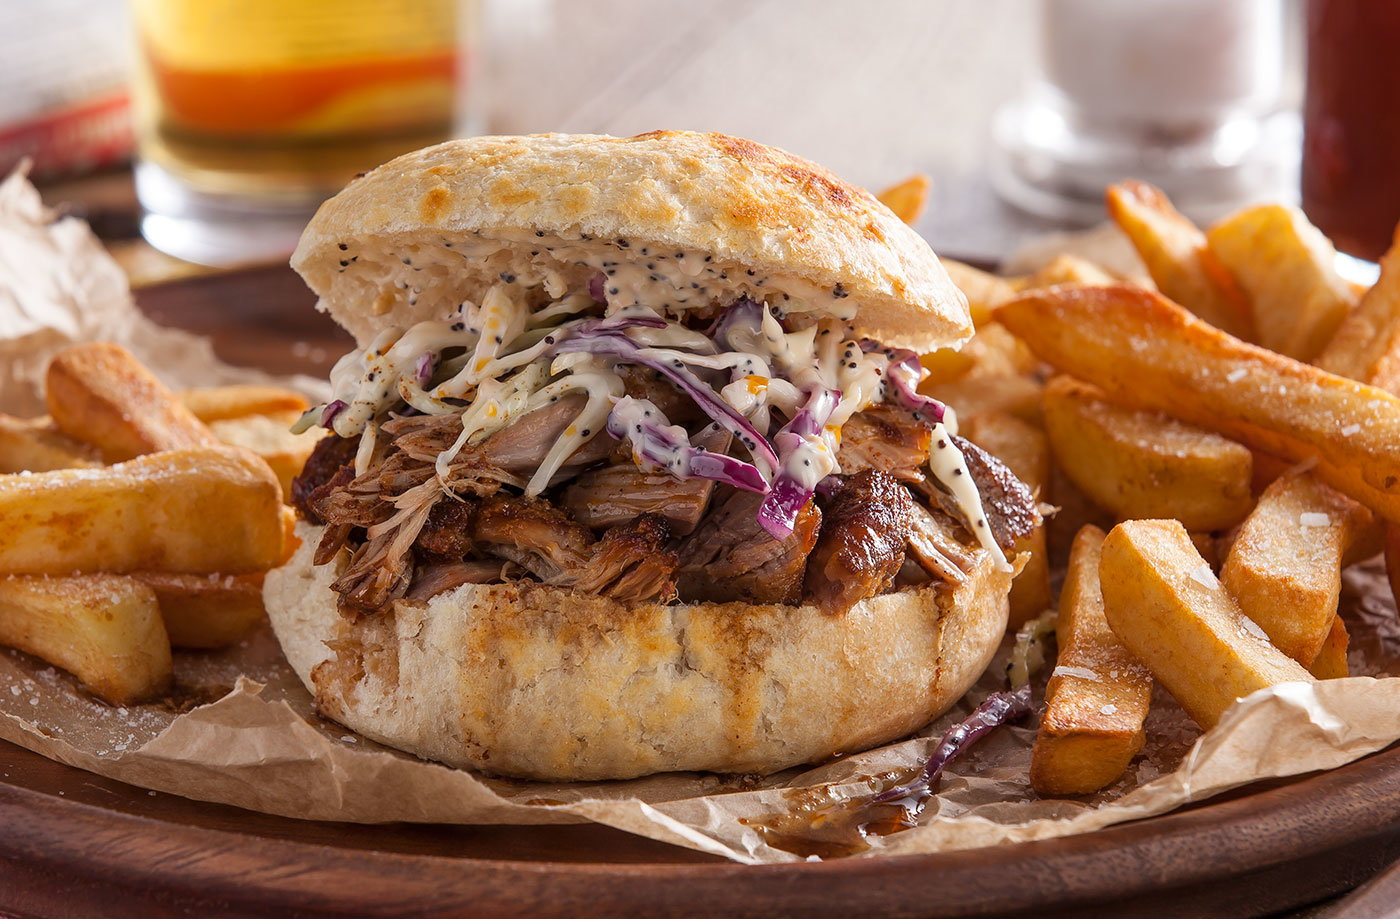 Pulled pork sandwich with slaw recipe